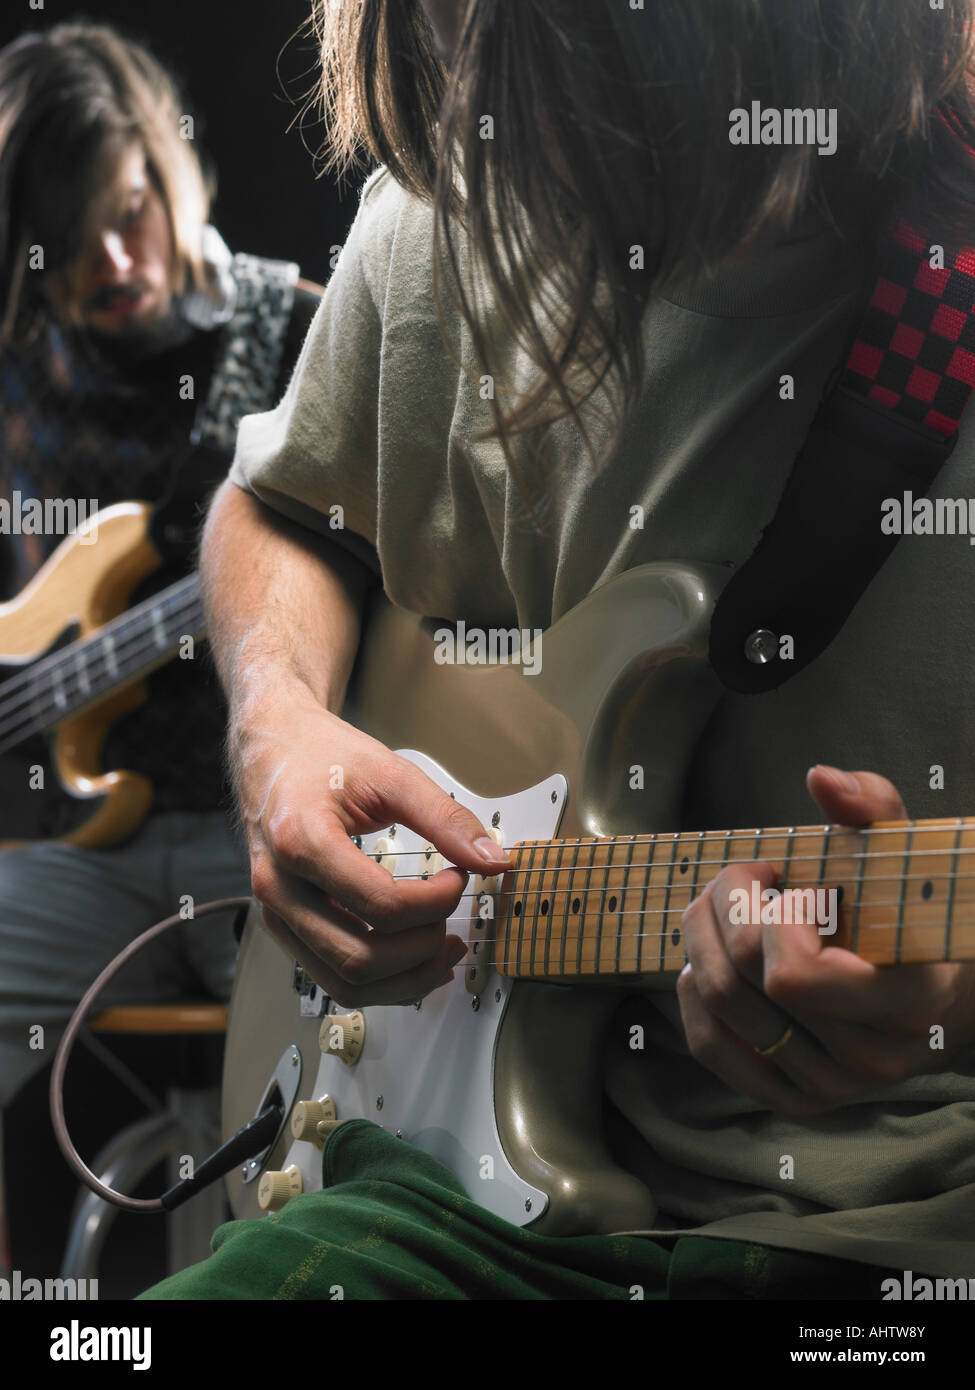 Two electric guitar players. - Stock Image